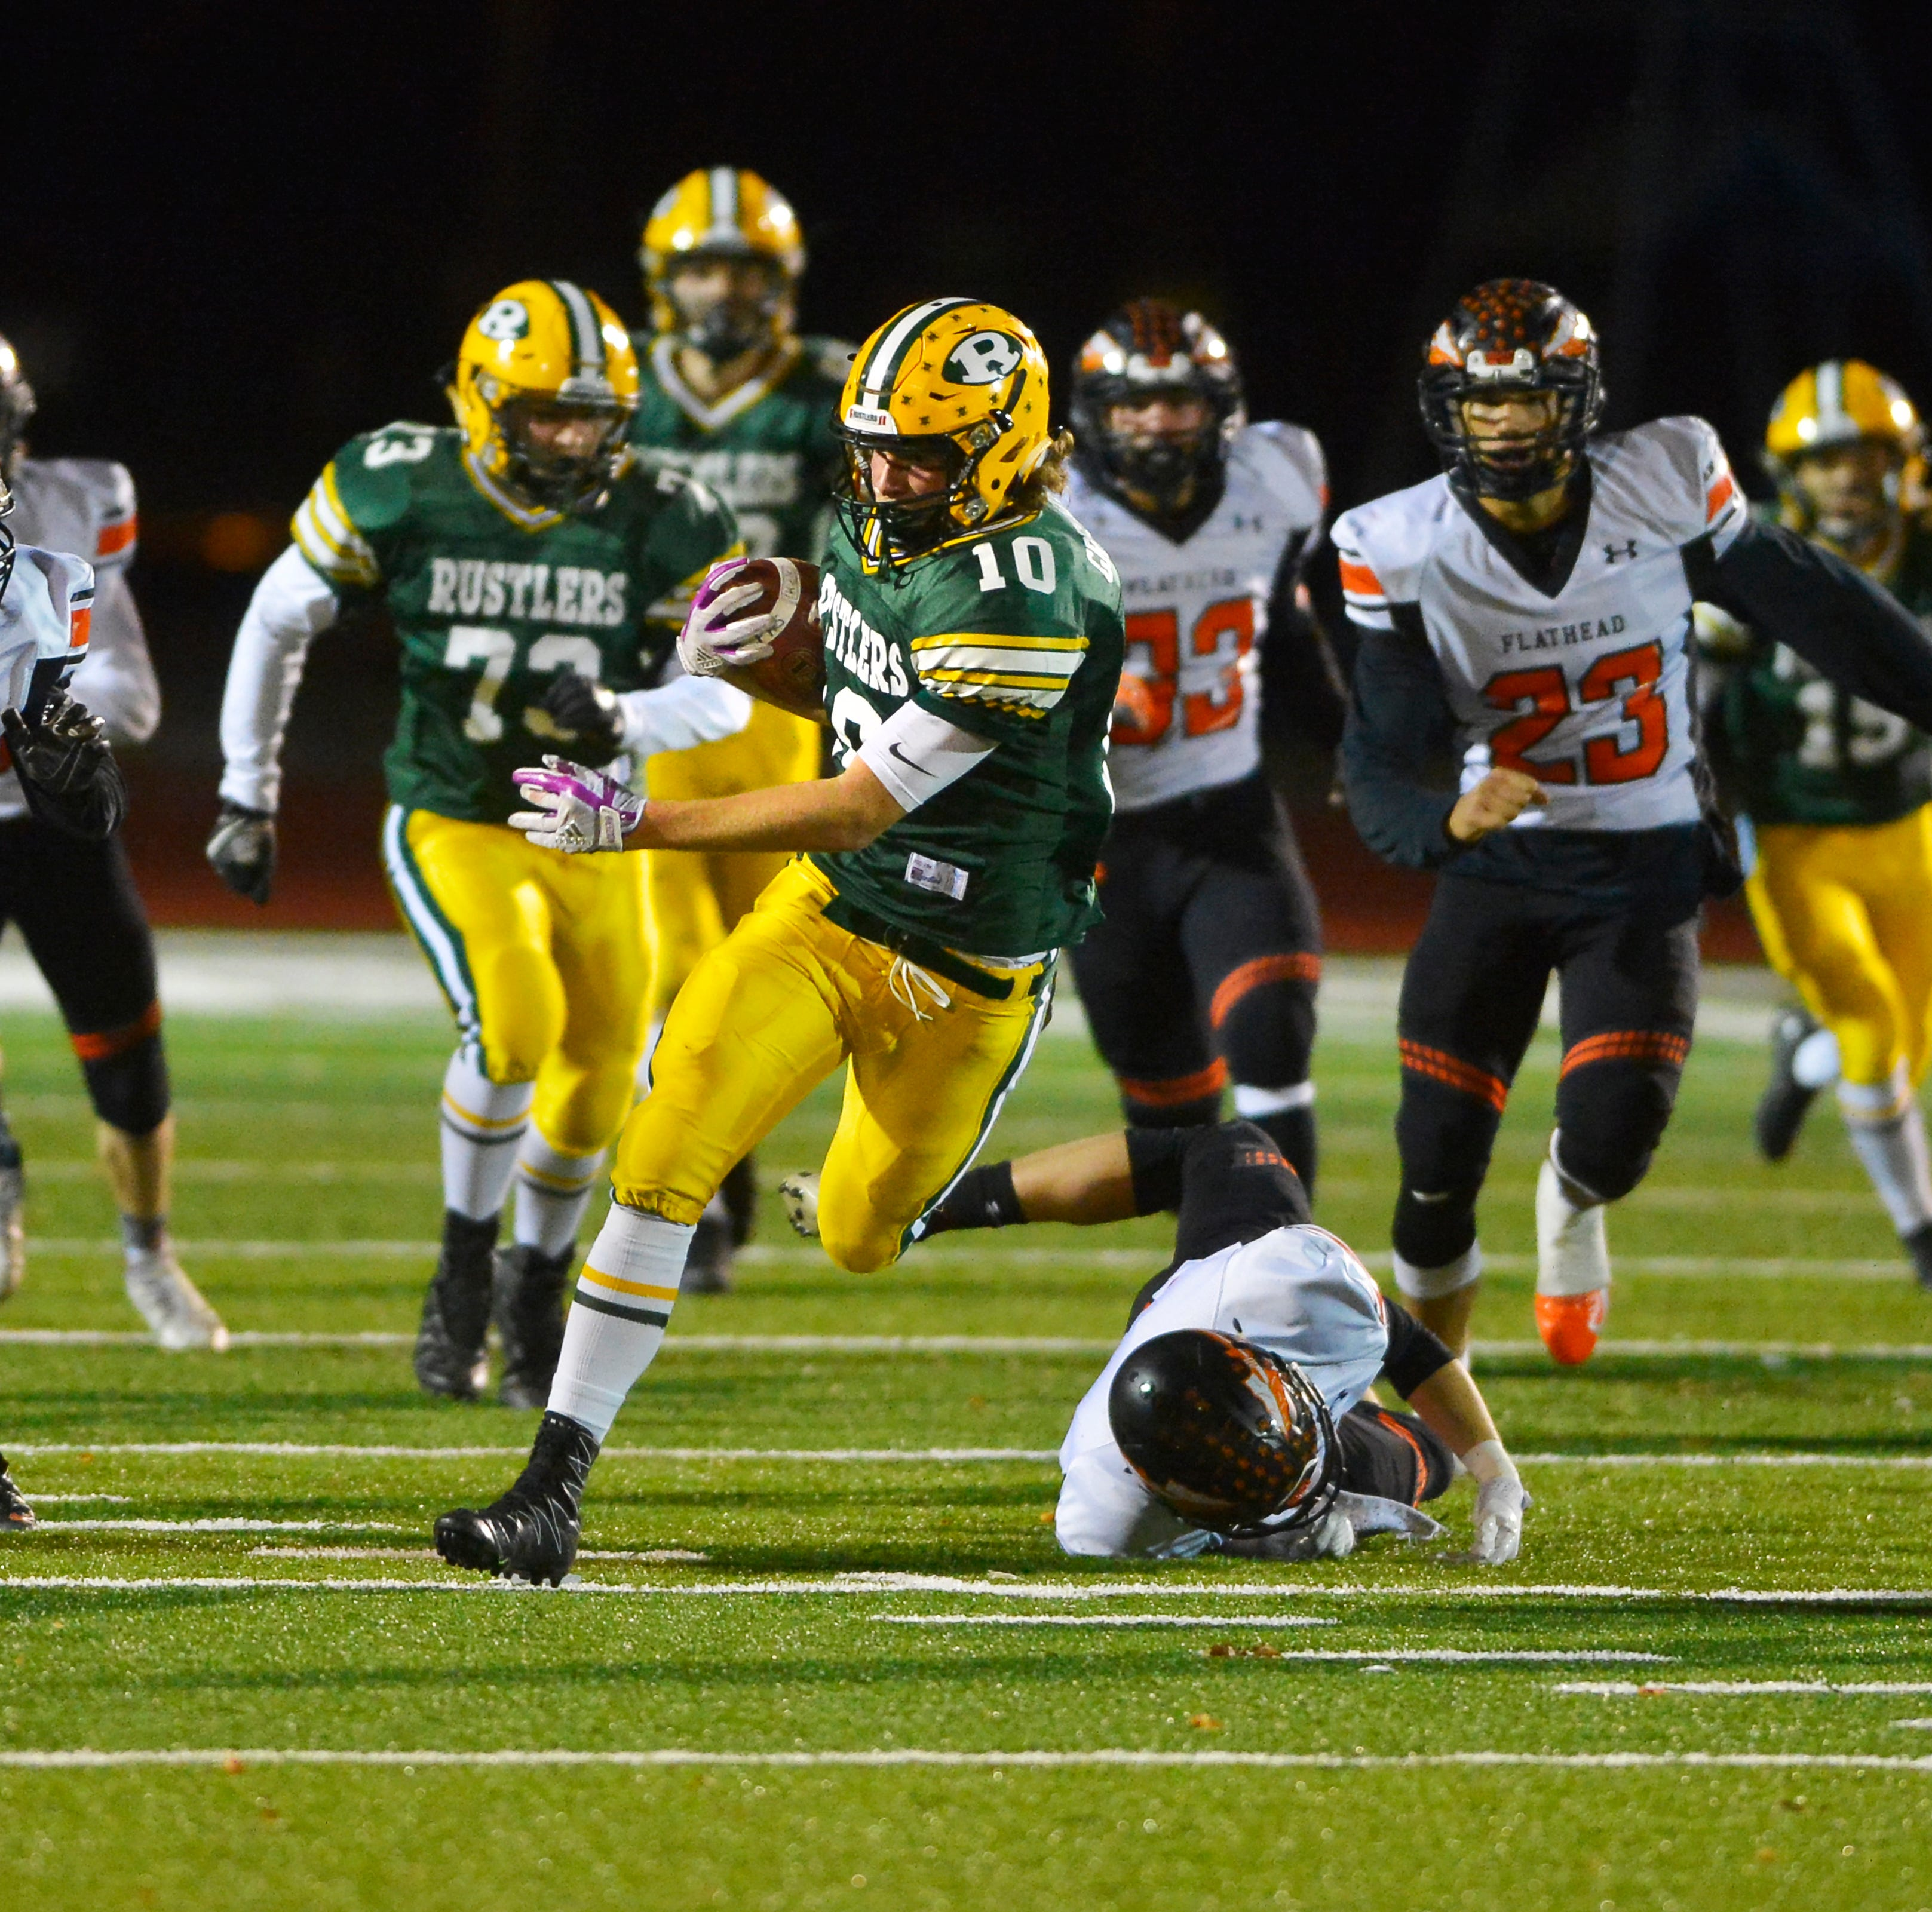 Counts, goal-line stand lead Flathead past Rustlers